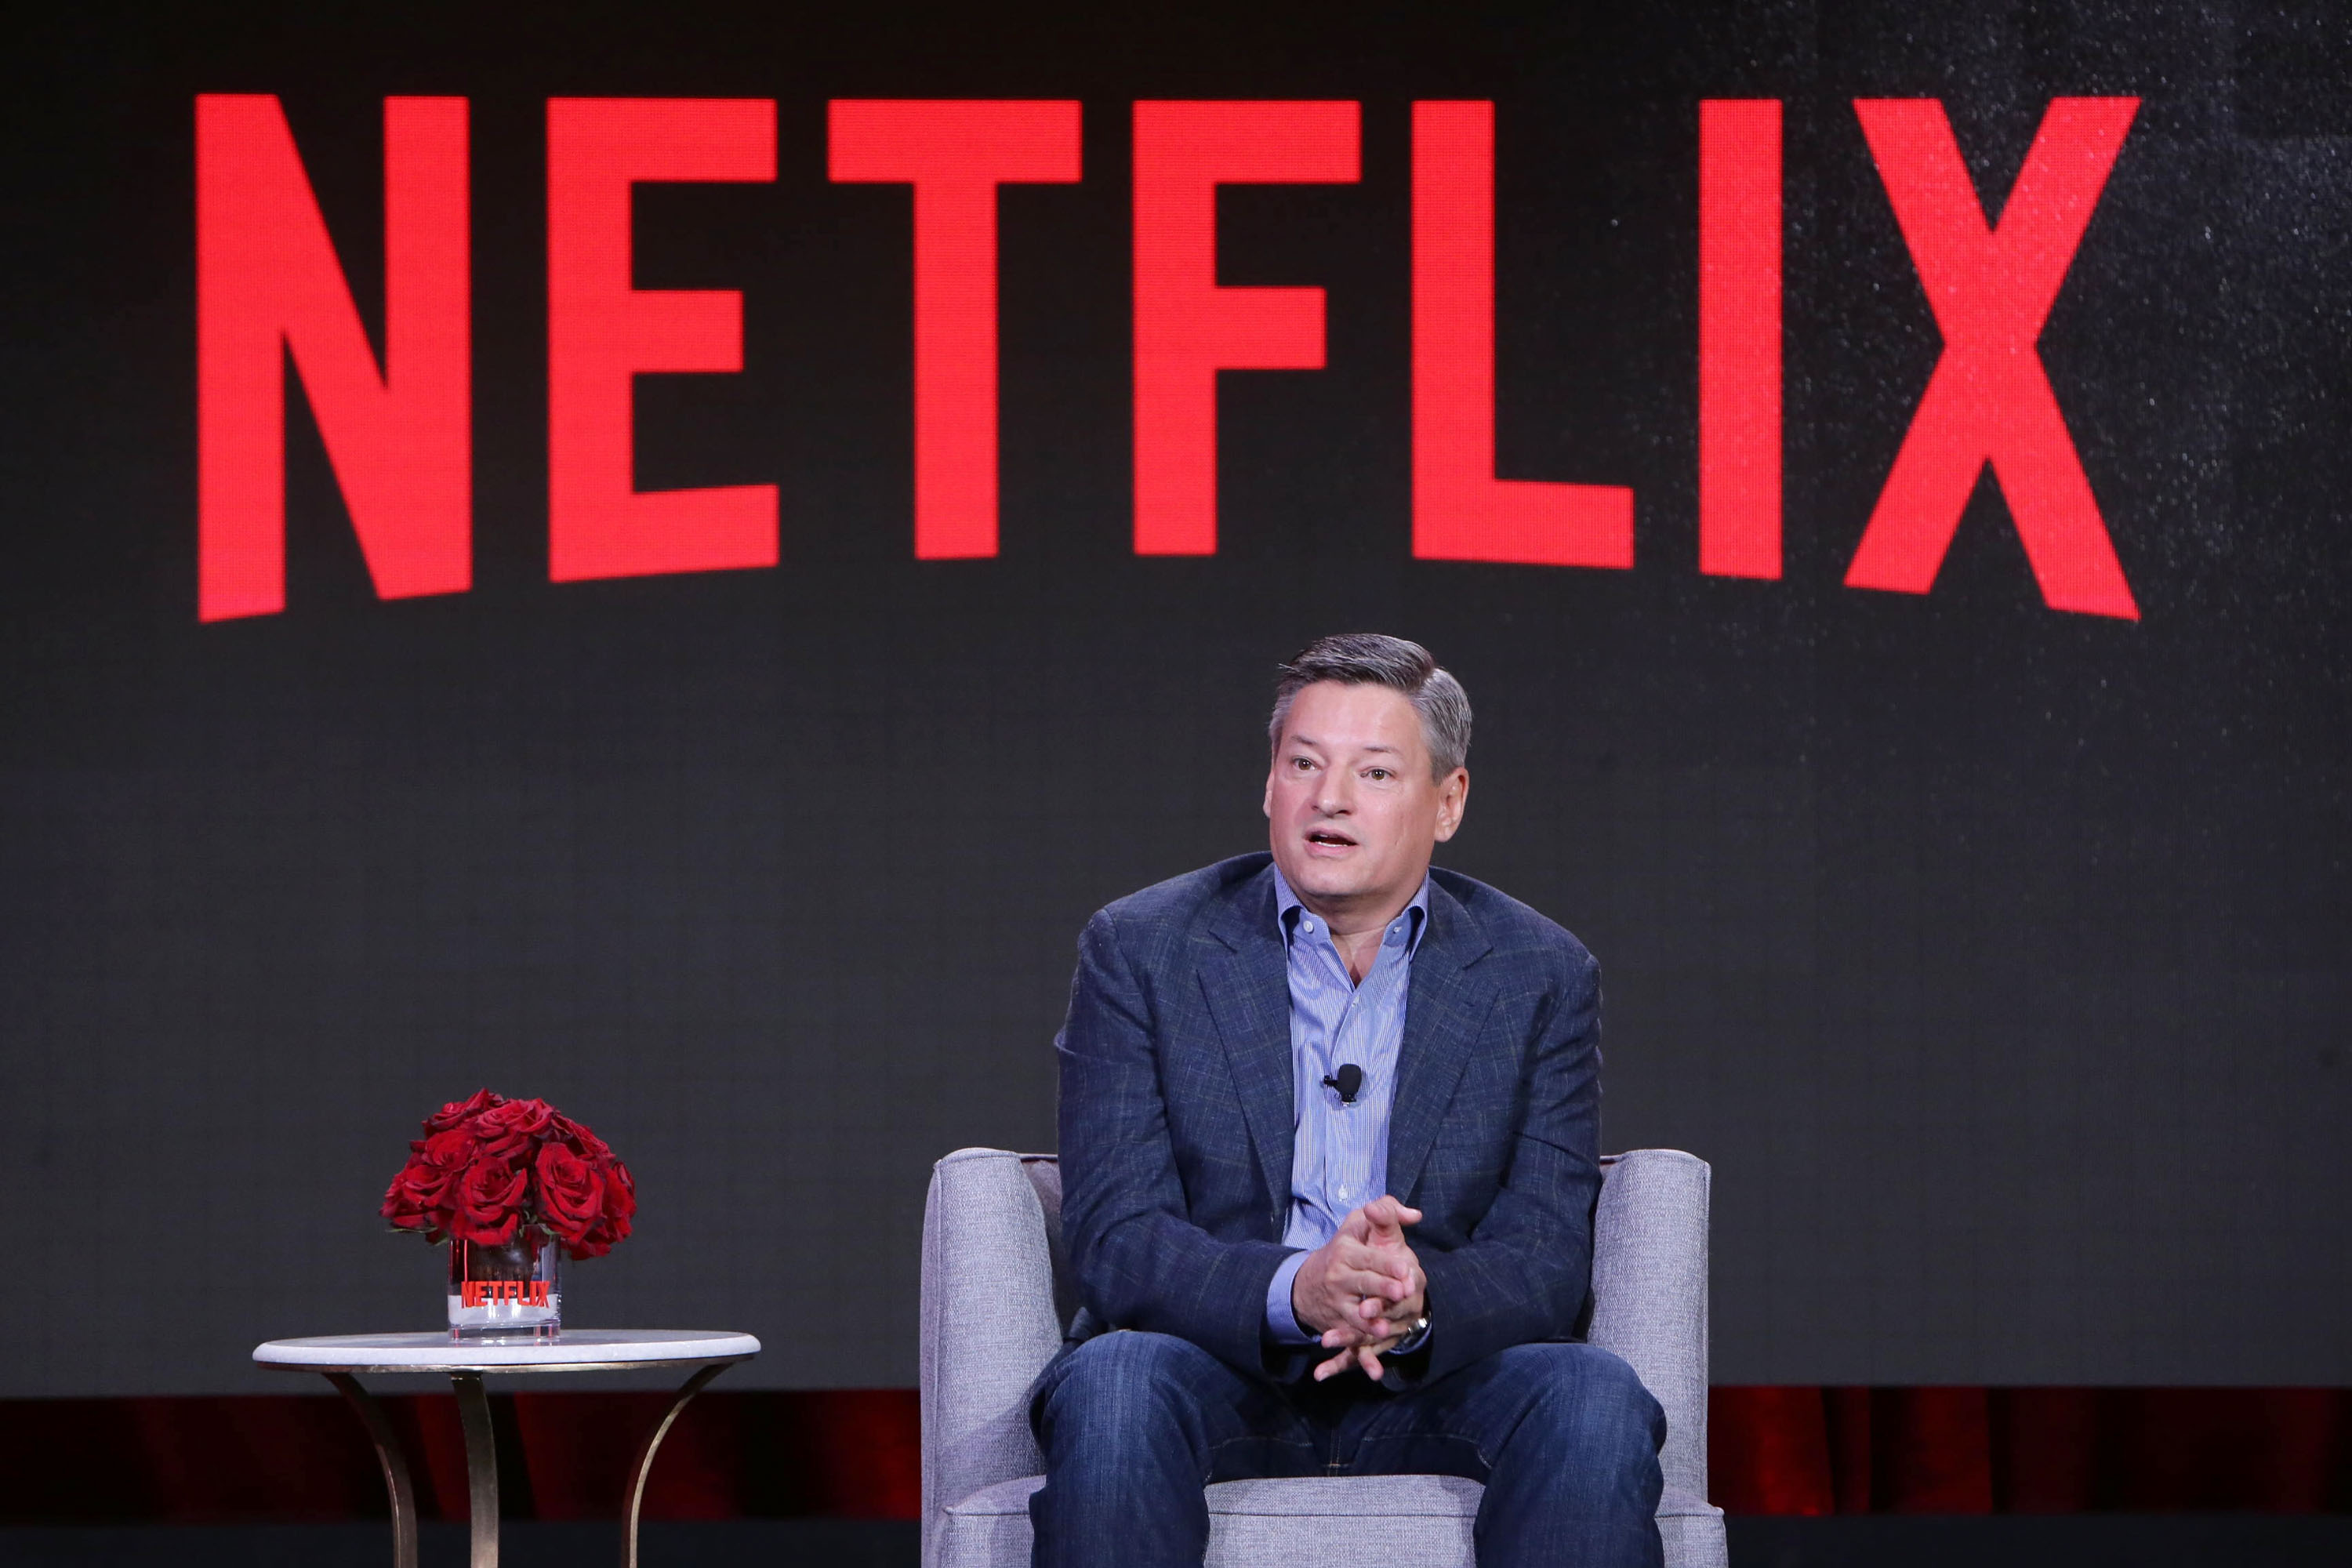 Netflix Teams With Univision to Produce 'El Chapo,' While Original 'Narcos' to Be Broadcast by Univision